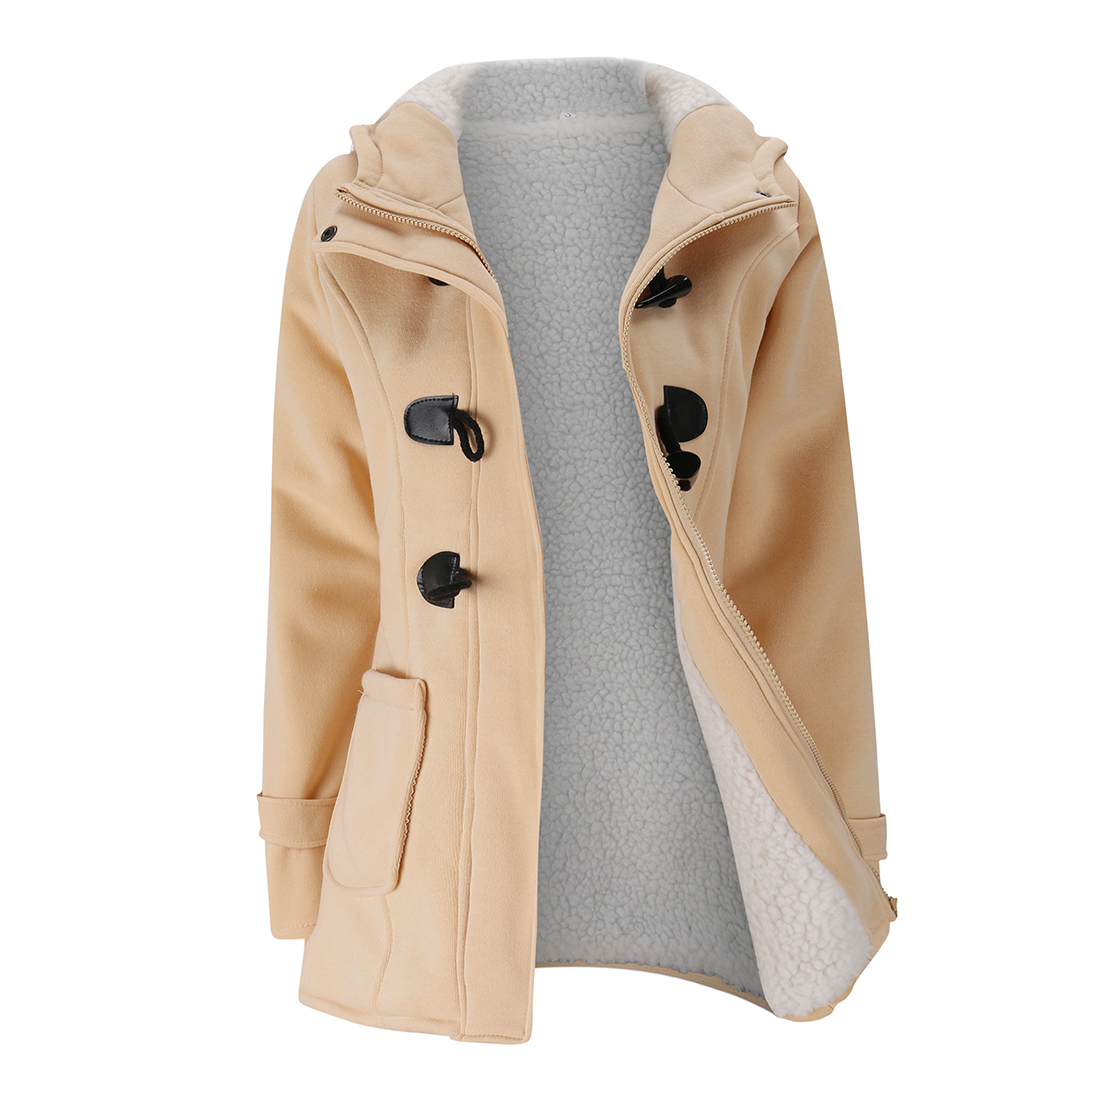 Women's Fashion Trench Coat Autumn Thick Lining Winter Jacket Overcoat Female Casual Long Hooded Coat Zipper Horn Button Outwear 1